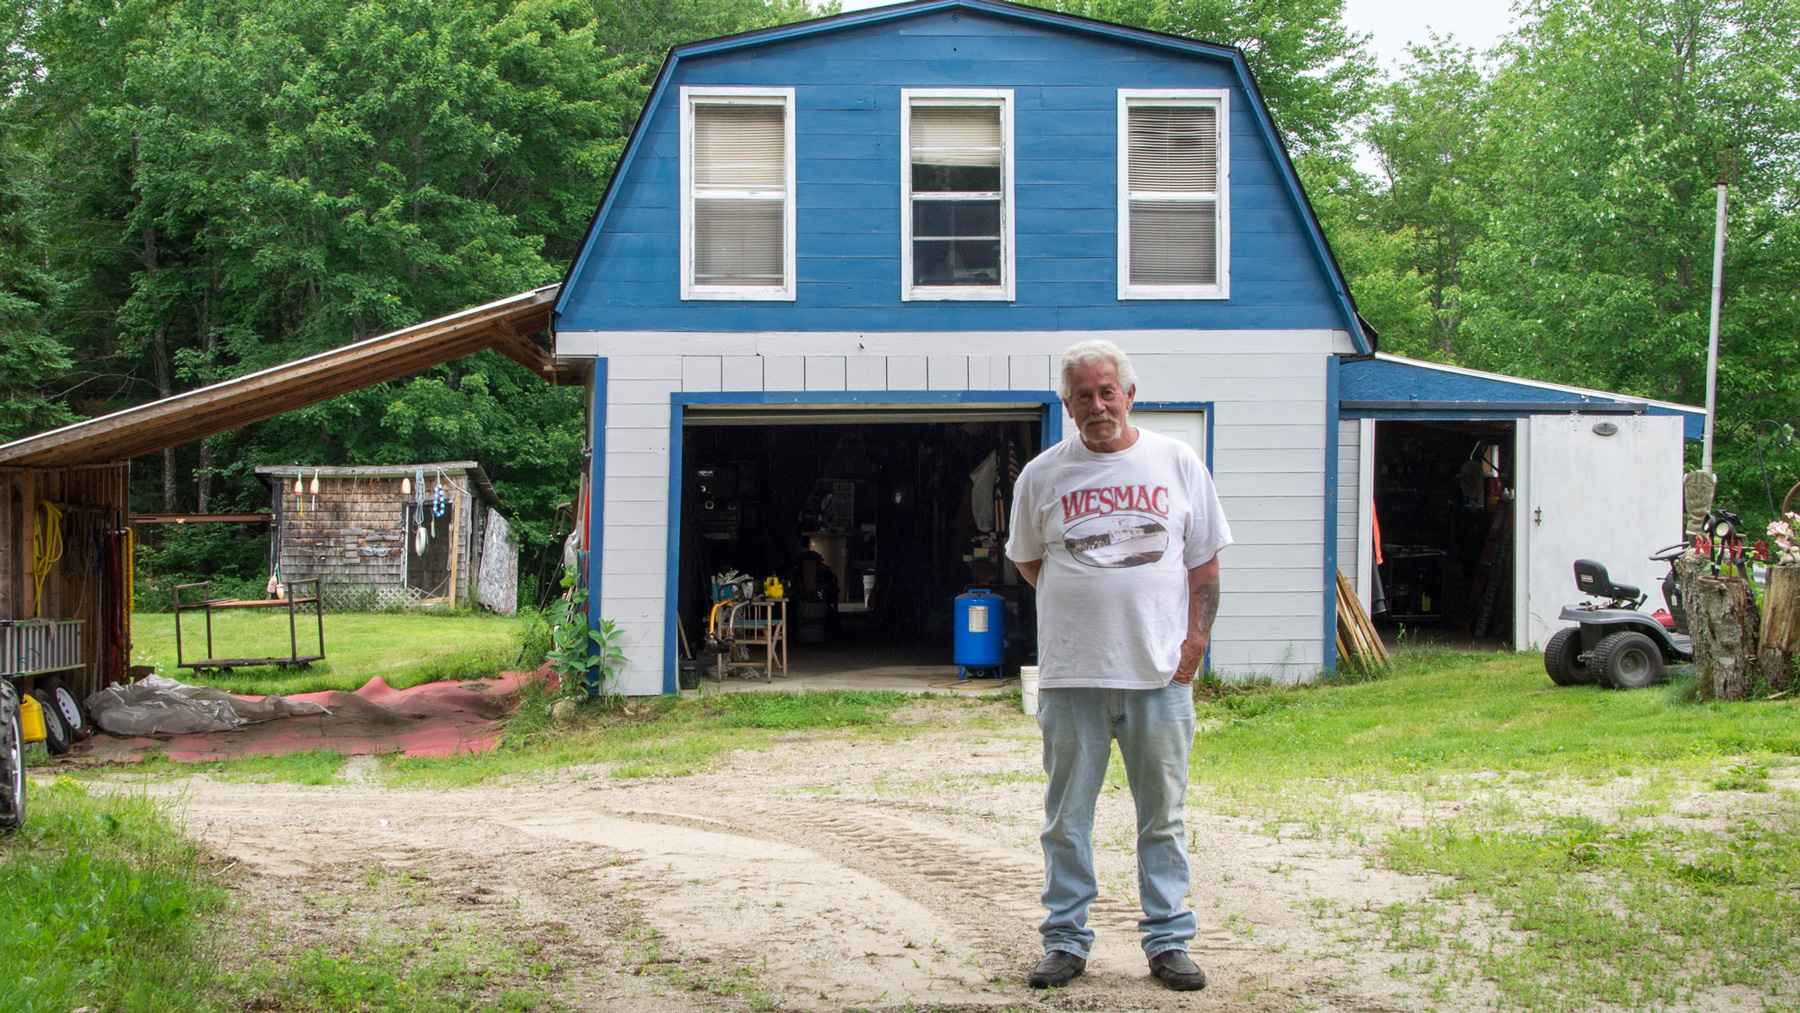 Lifelong Mainer Vaughn Sinclair and his wife live in Surry, Maine, on land they inherited from family. After five years, they found out their well water had dangerous levels of arsenic and could not be used. (Jenna Miller/ News21)